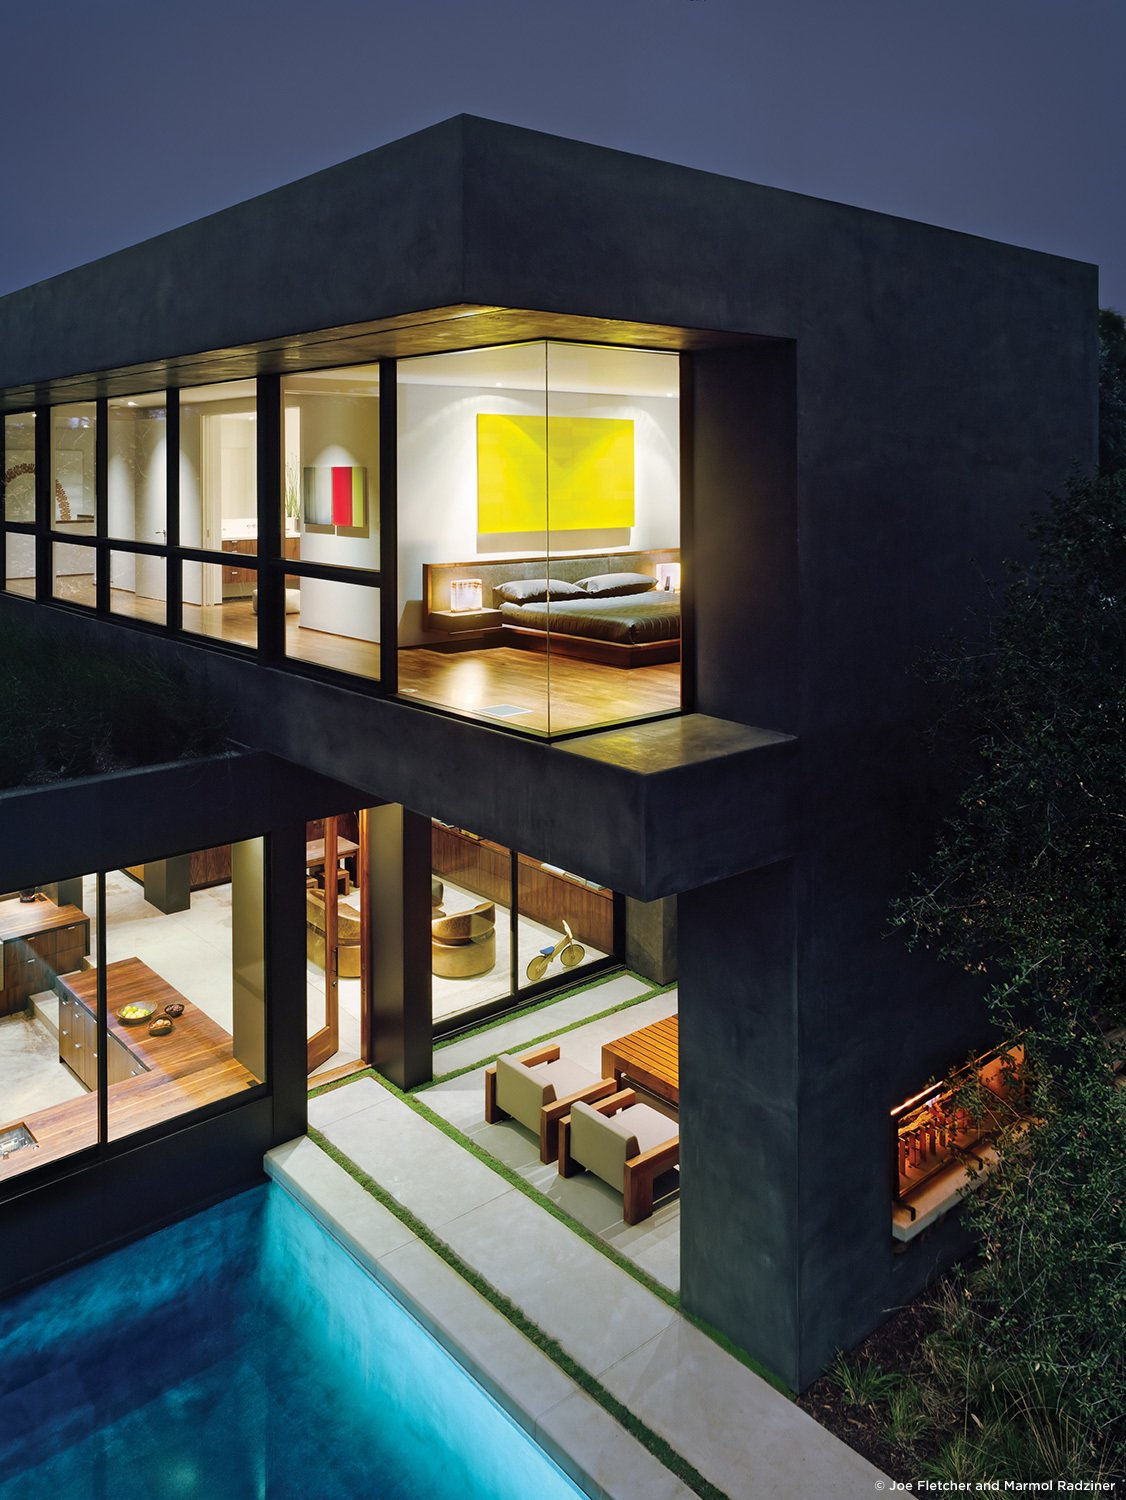 #ViennaWayResidence #modern #midcentury #exterior #outside #outdoors #levels #landscape #structure #geometry #lighting #pool #green #Venice #California #MarmolRadziner  Vienna Way Residence by Marmol Radziner